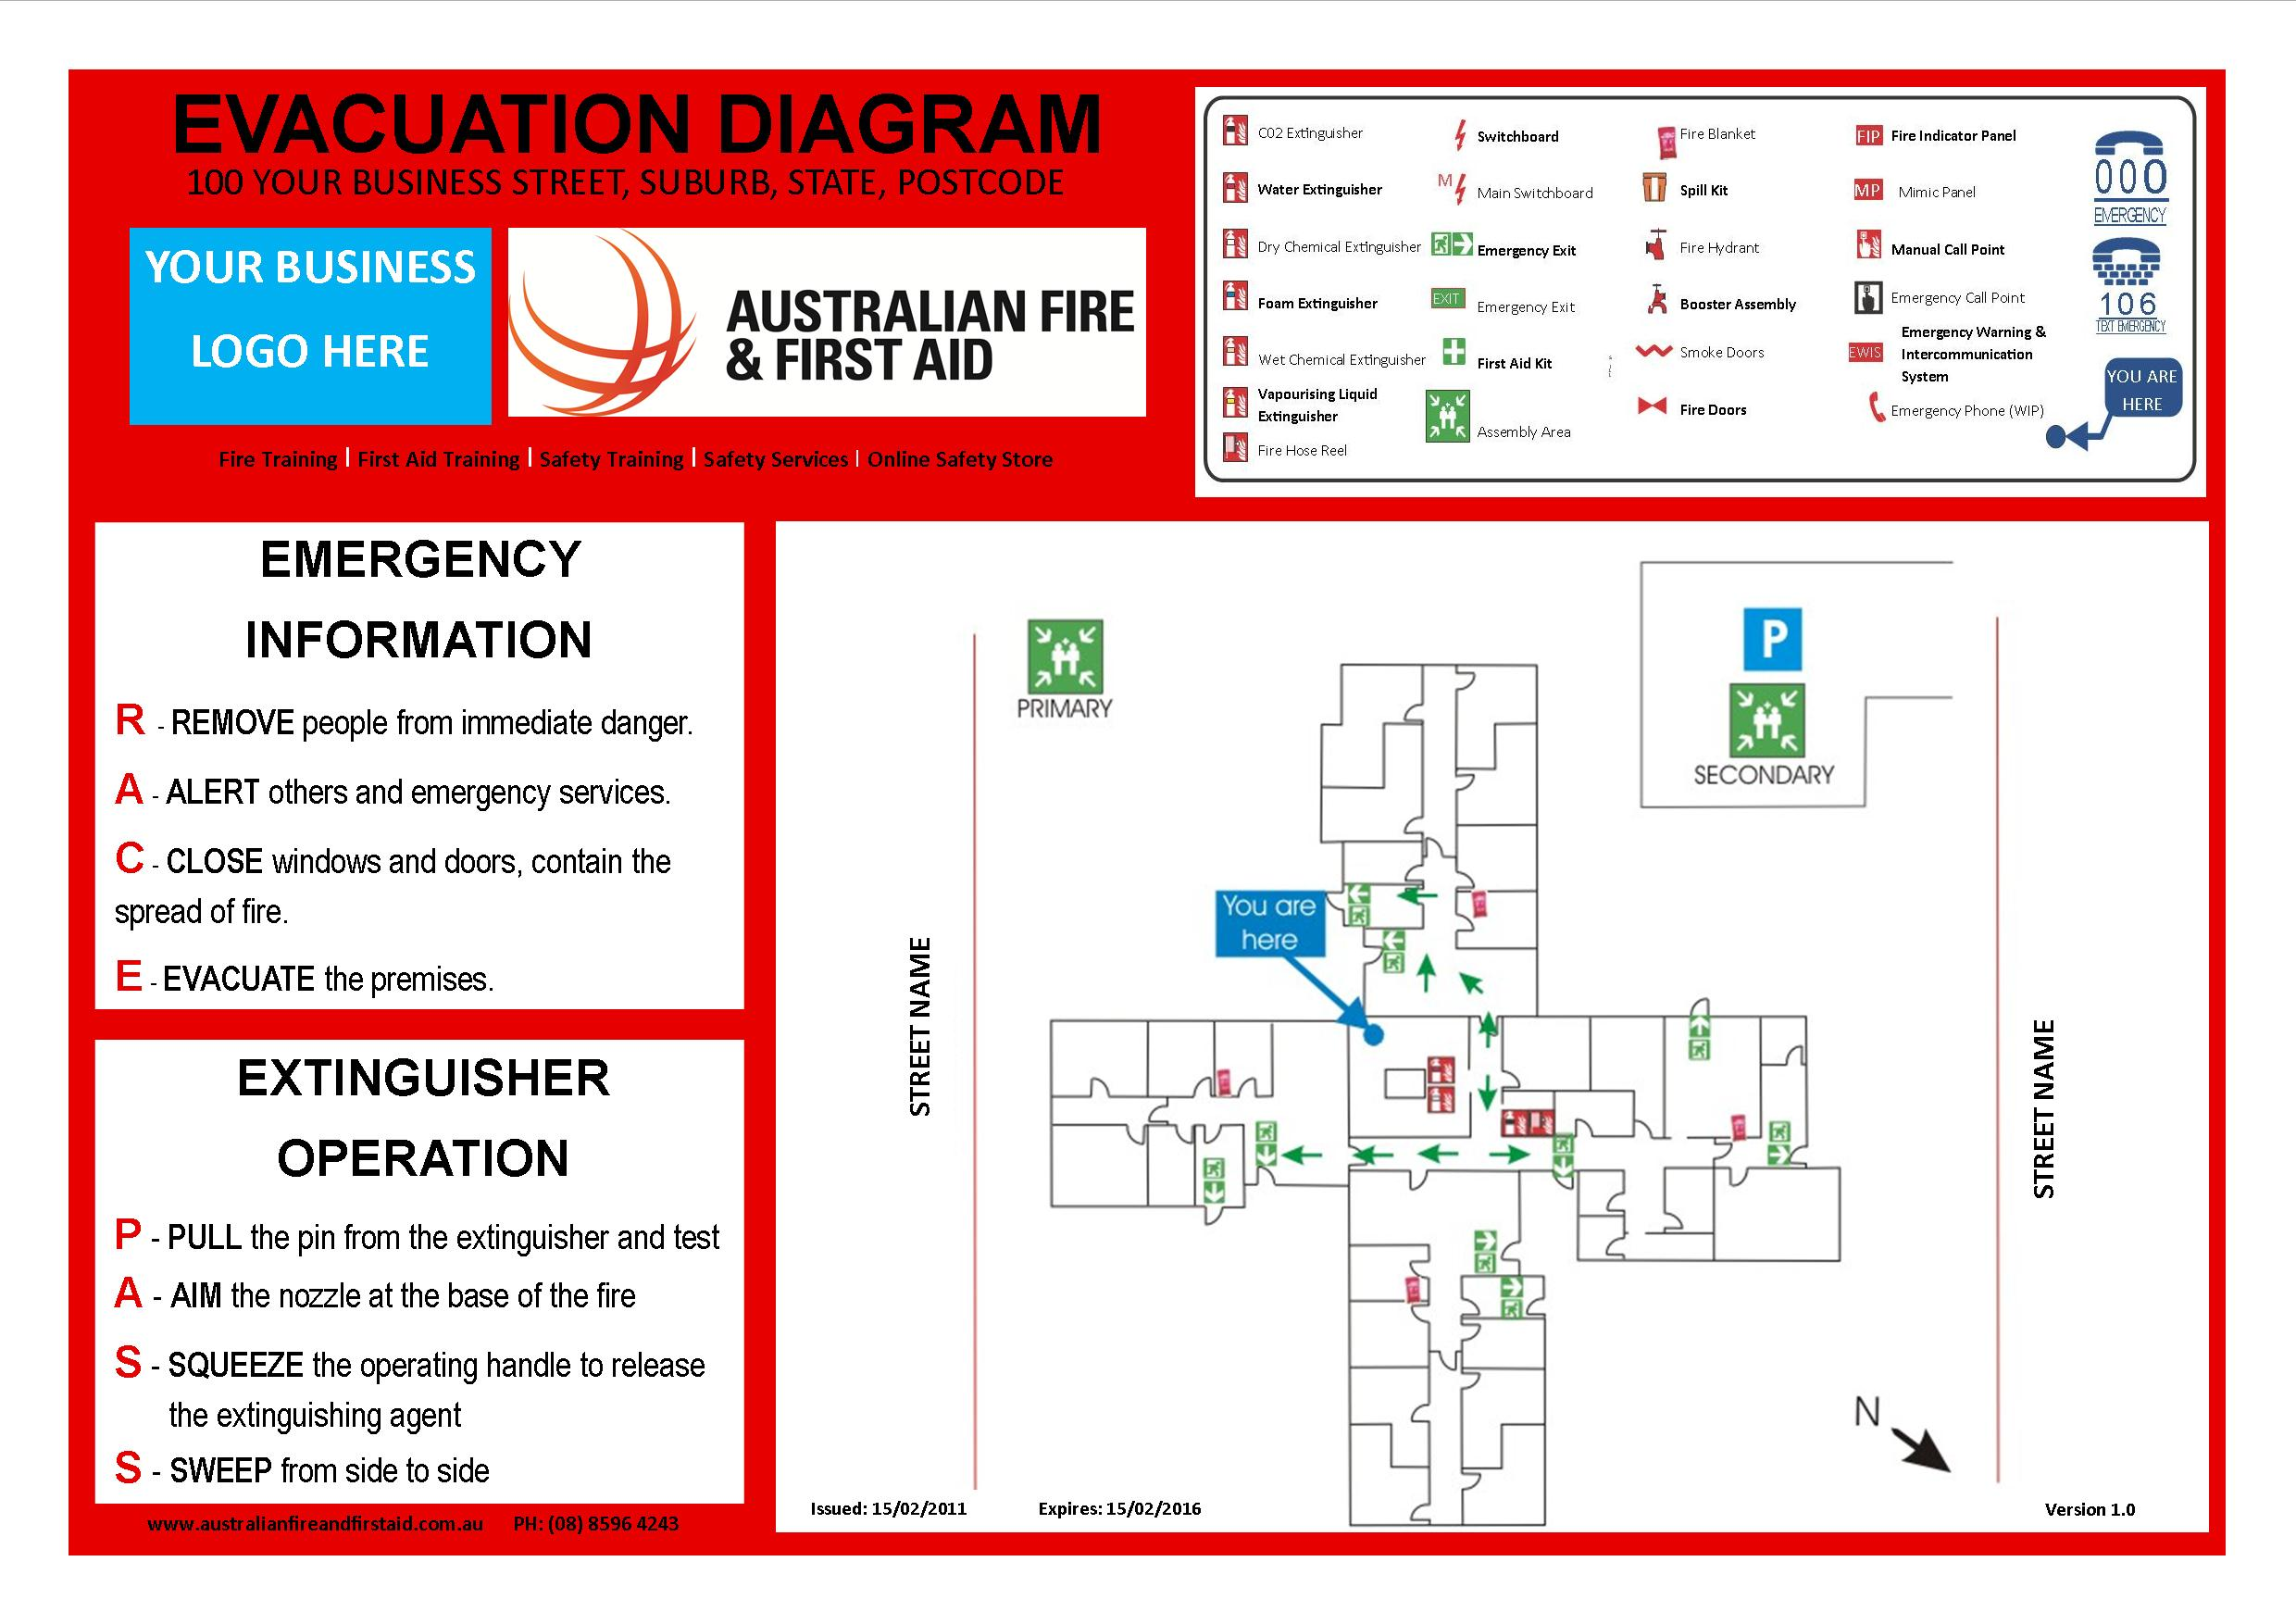 fire evacuation procedure template free - emergency evacuation procedures diagram emergency free